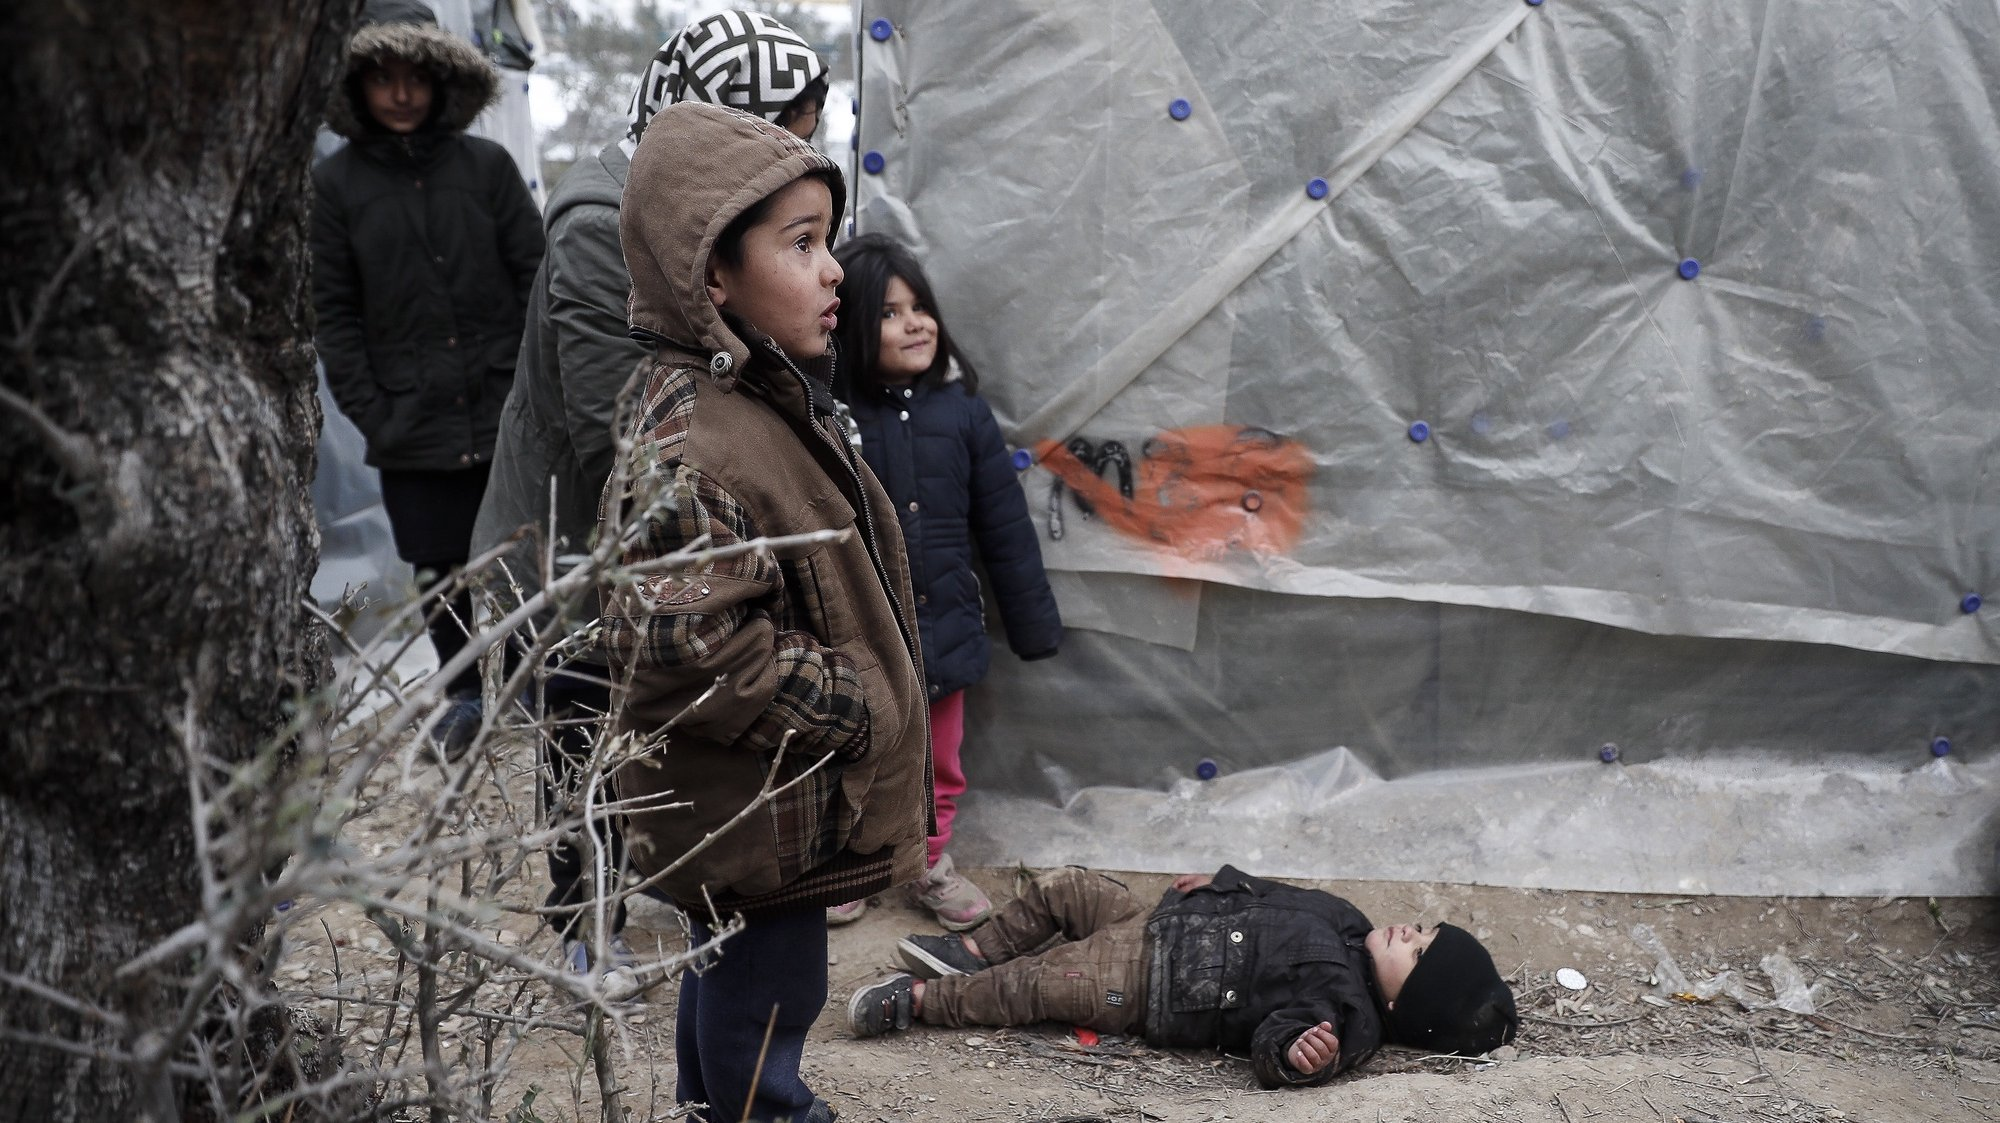 epa08767212 YEARENDER 2020 POLITICS  Refugee children outside their tent in an olive yard next to the refugee camp of Moria, on Lesvos island, Greece, 21 January 2020 (issued 22 January 2020). The entire island of Lesvos among with Chios and Samos are holding a 24-hour strike on 22 January to protest the migration situation as thousands of asylum seekers are stranded there in unbearable situation and low temperatures.  EPA/DIMITRIS TOSIDIS *** Local Caption *** 55790483